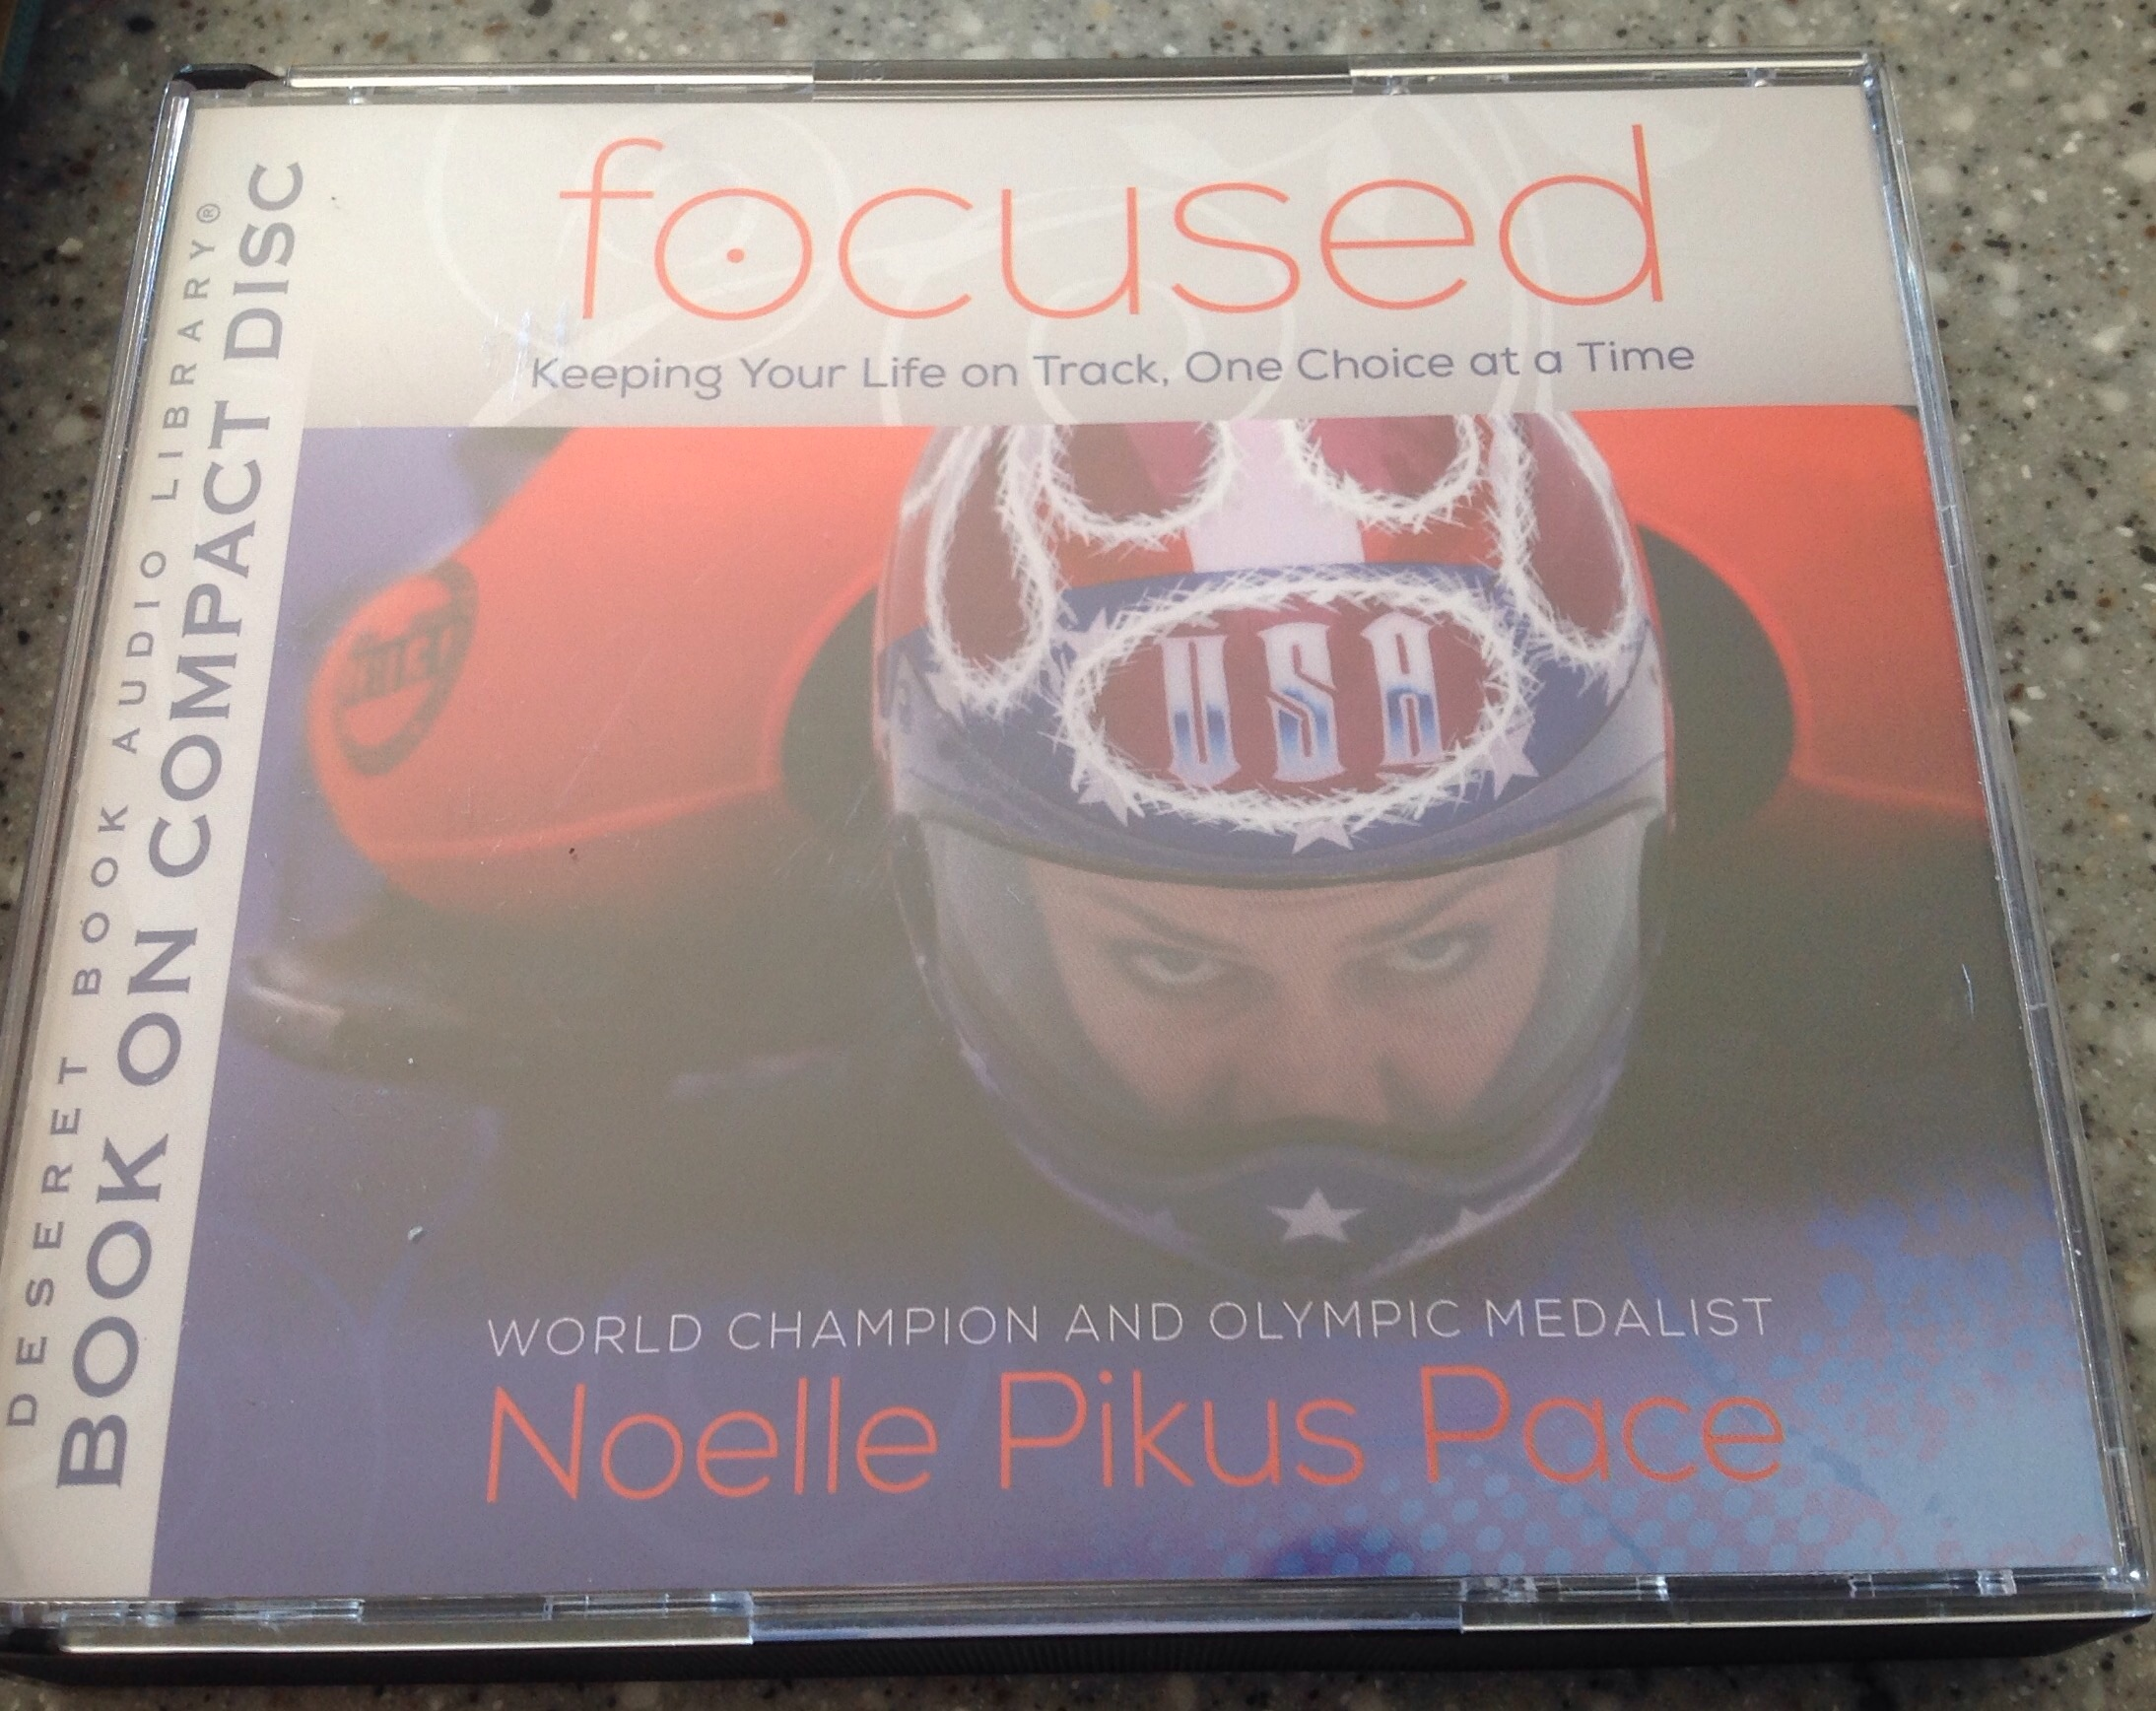 What we're reading/listening to:  Focused by Noelle Pikus Pace